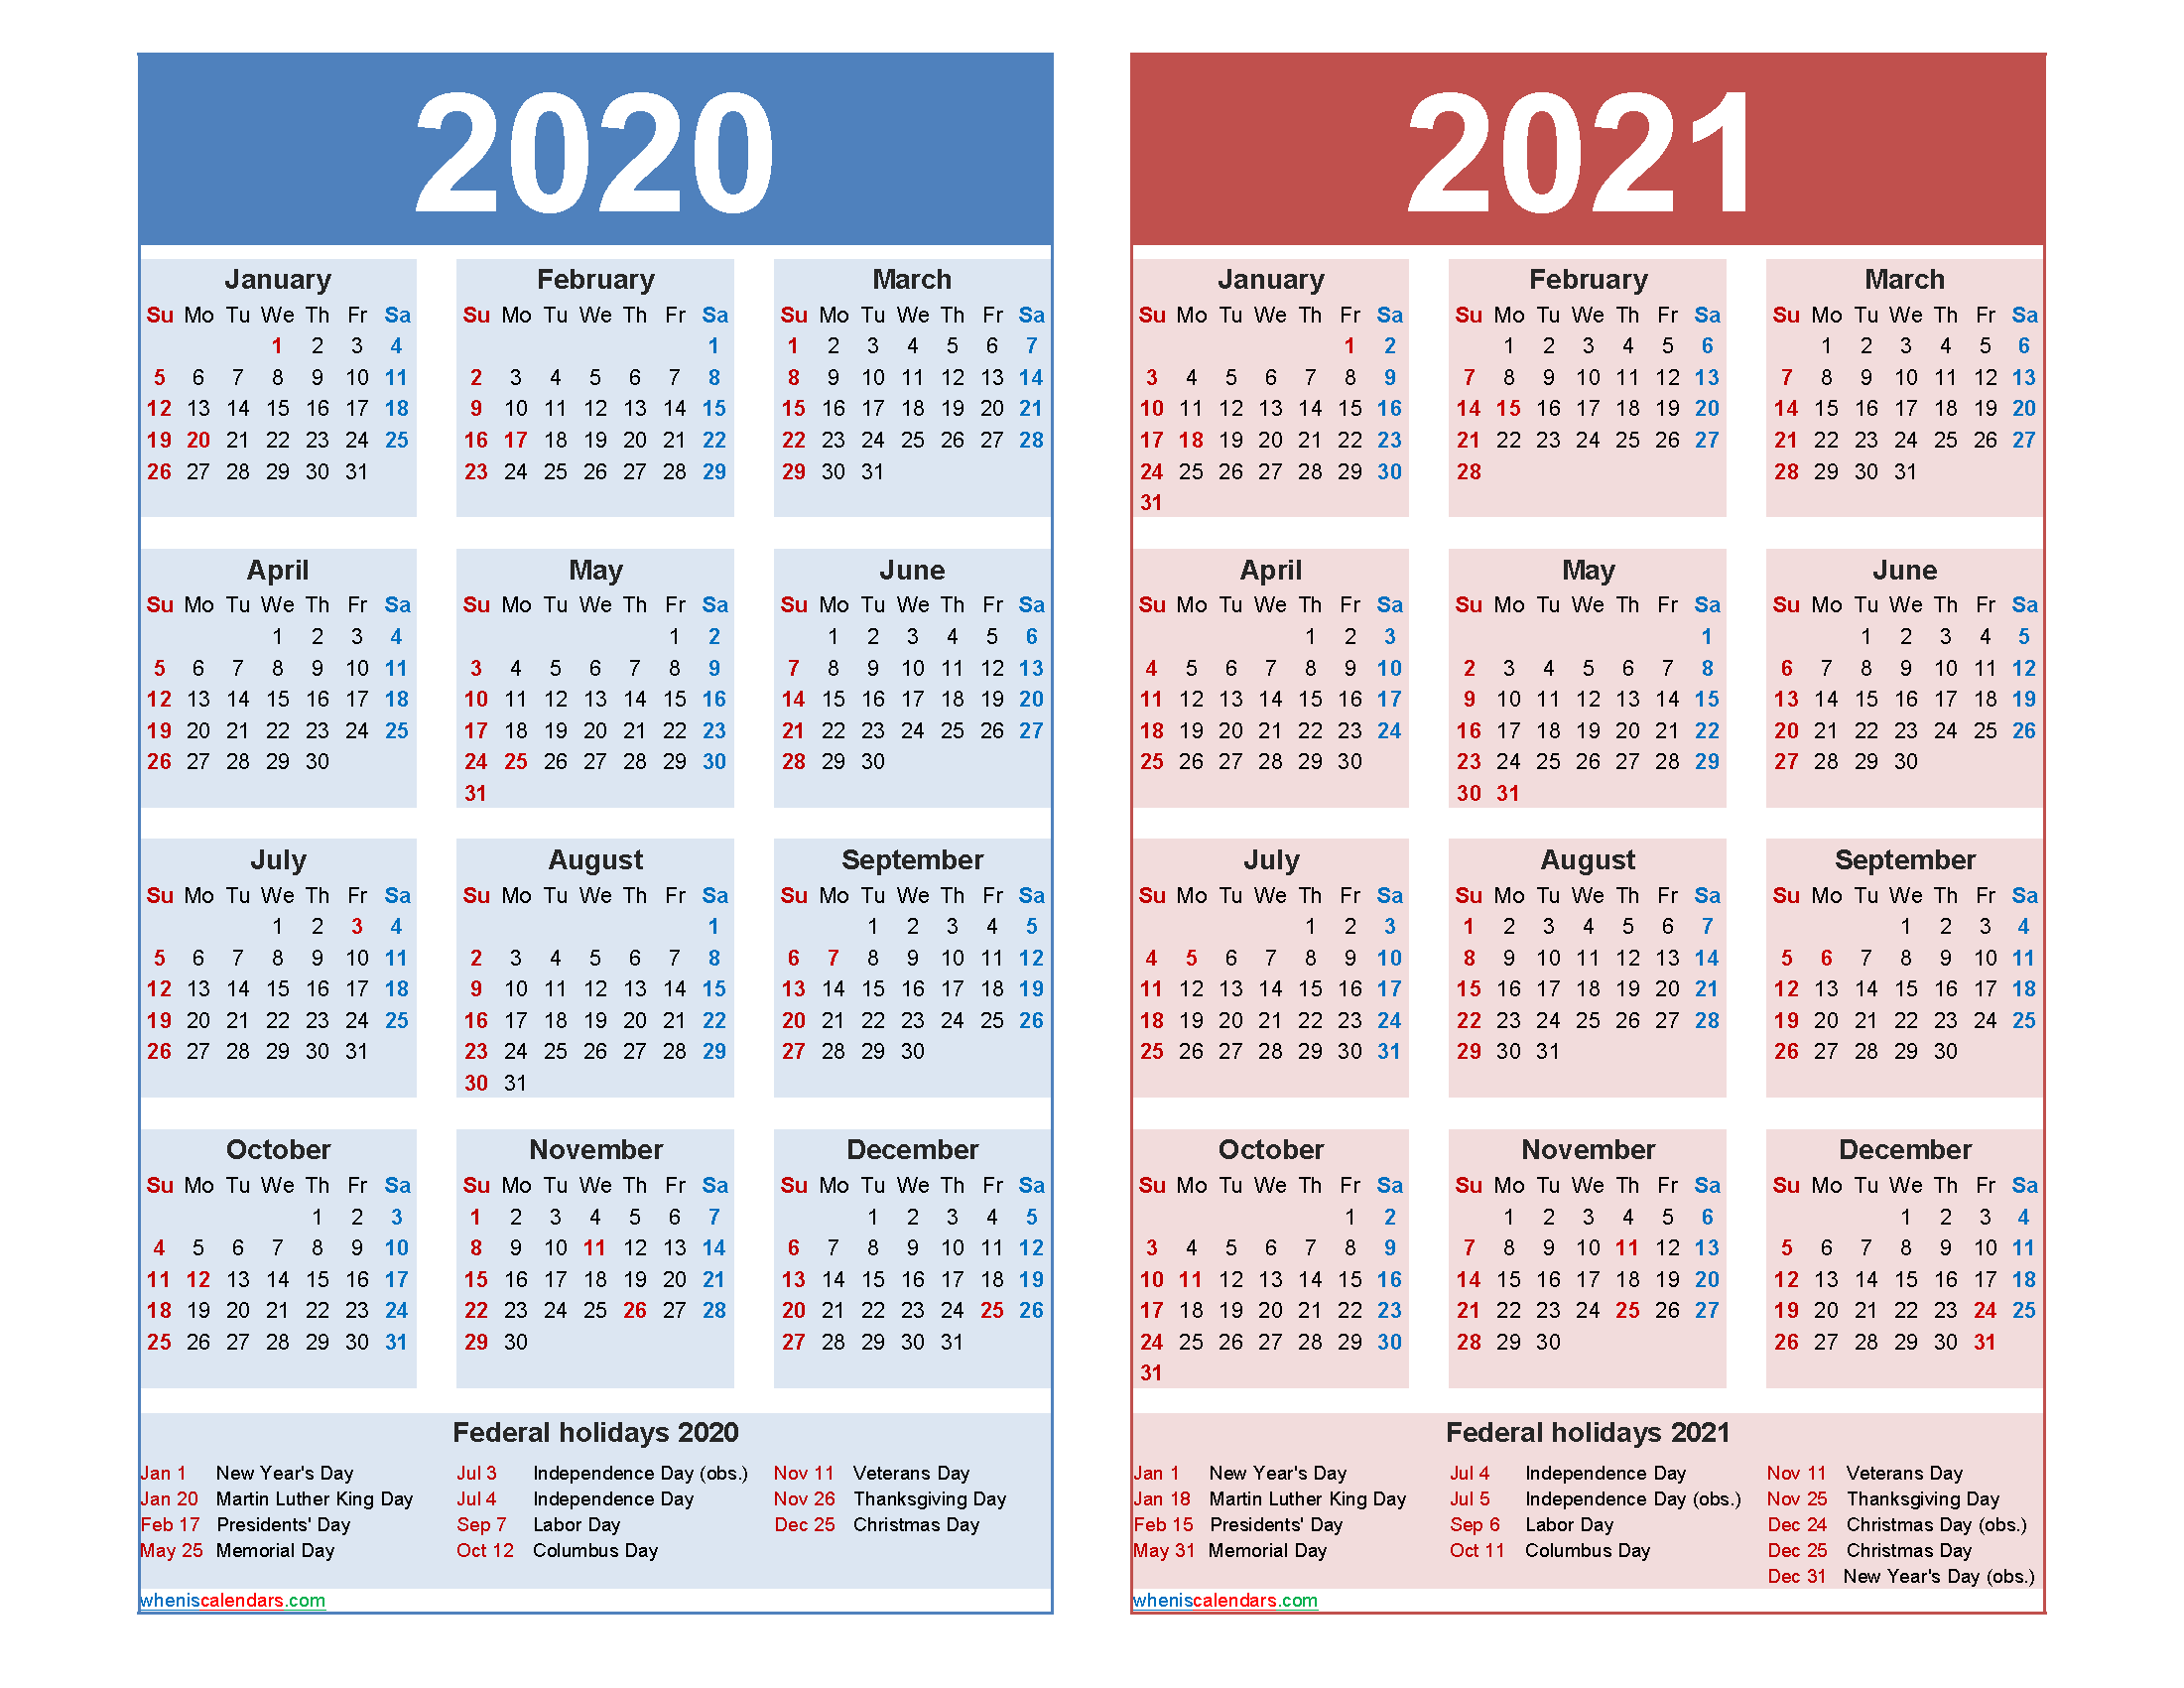 Free 2020 2021 Calendar Printable with Holidays